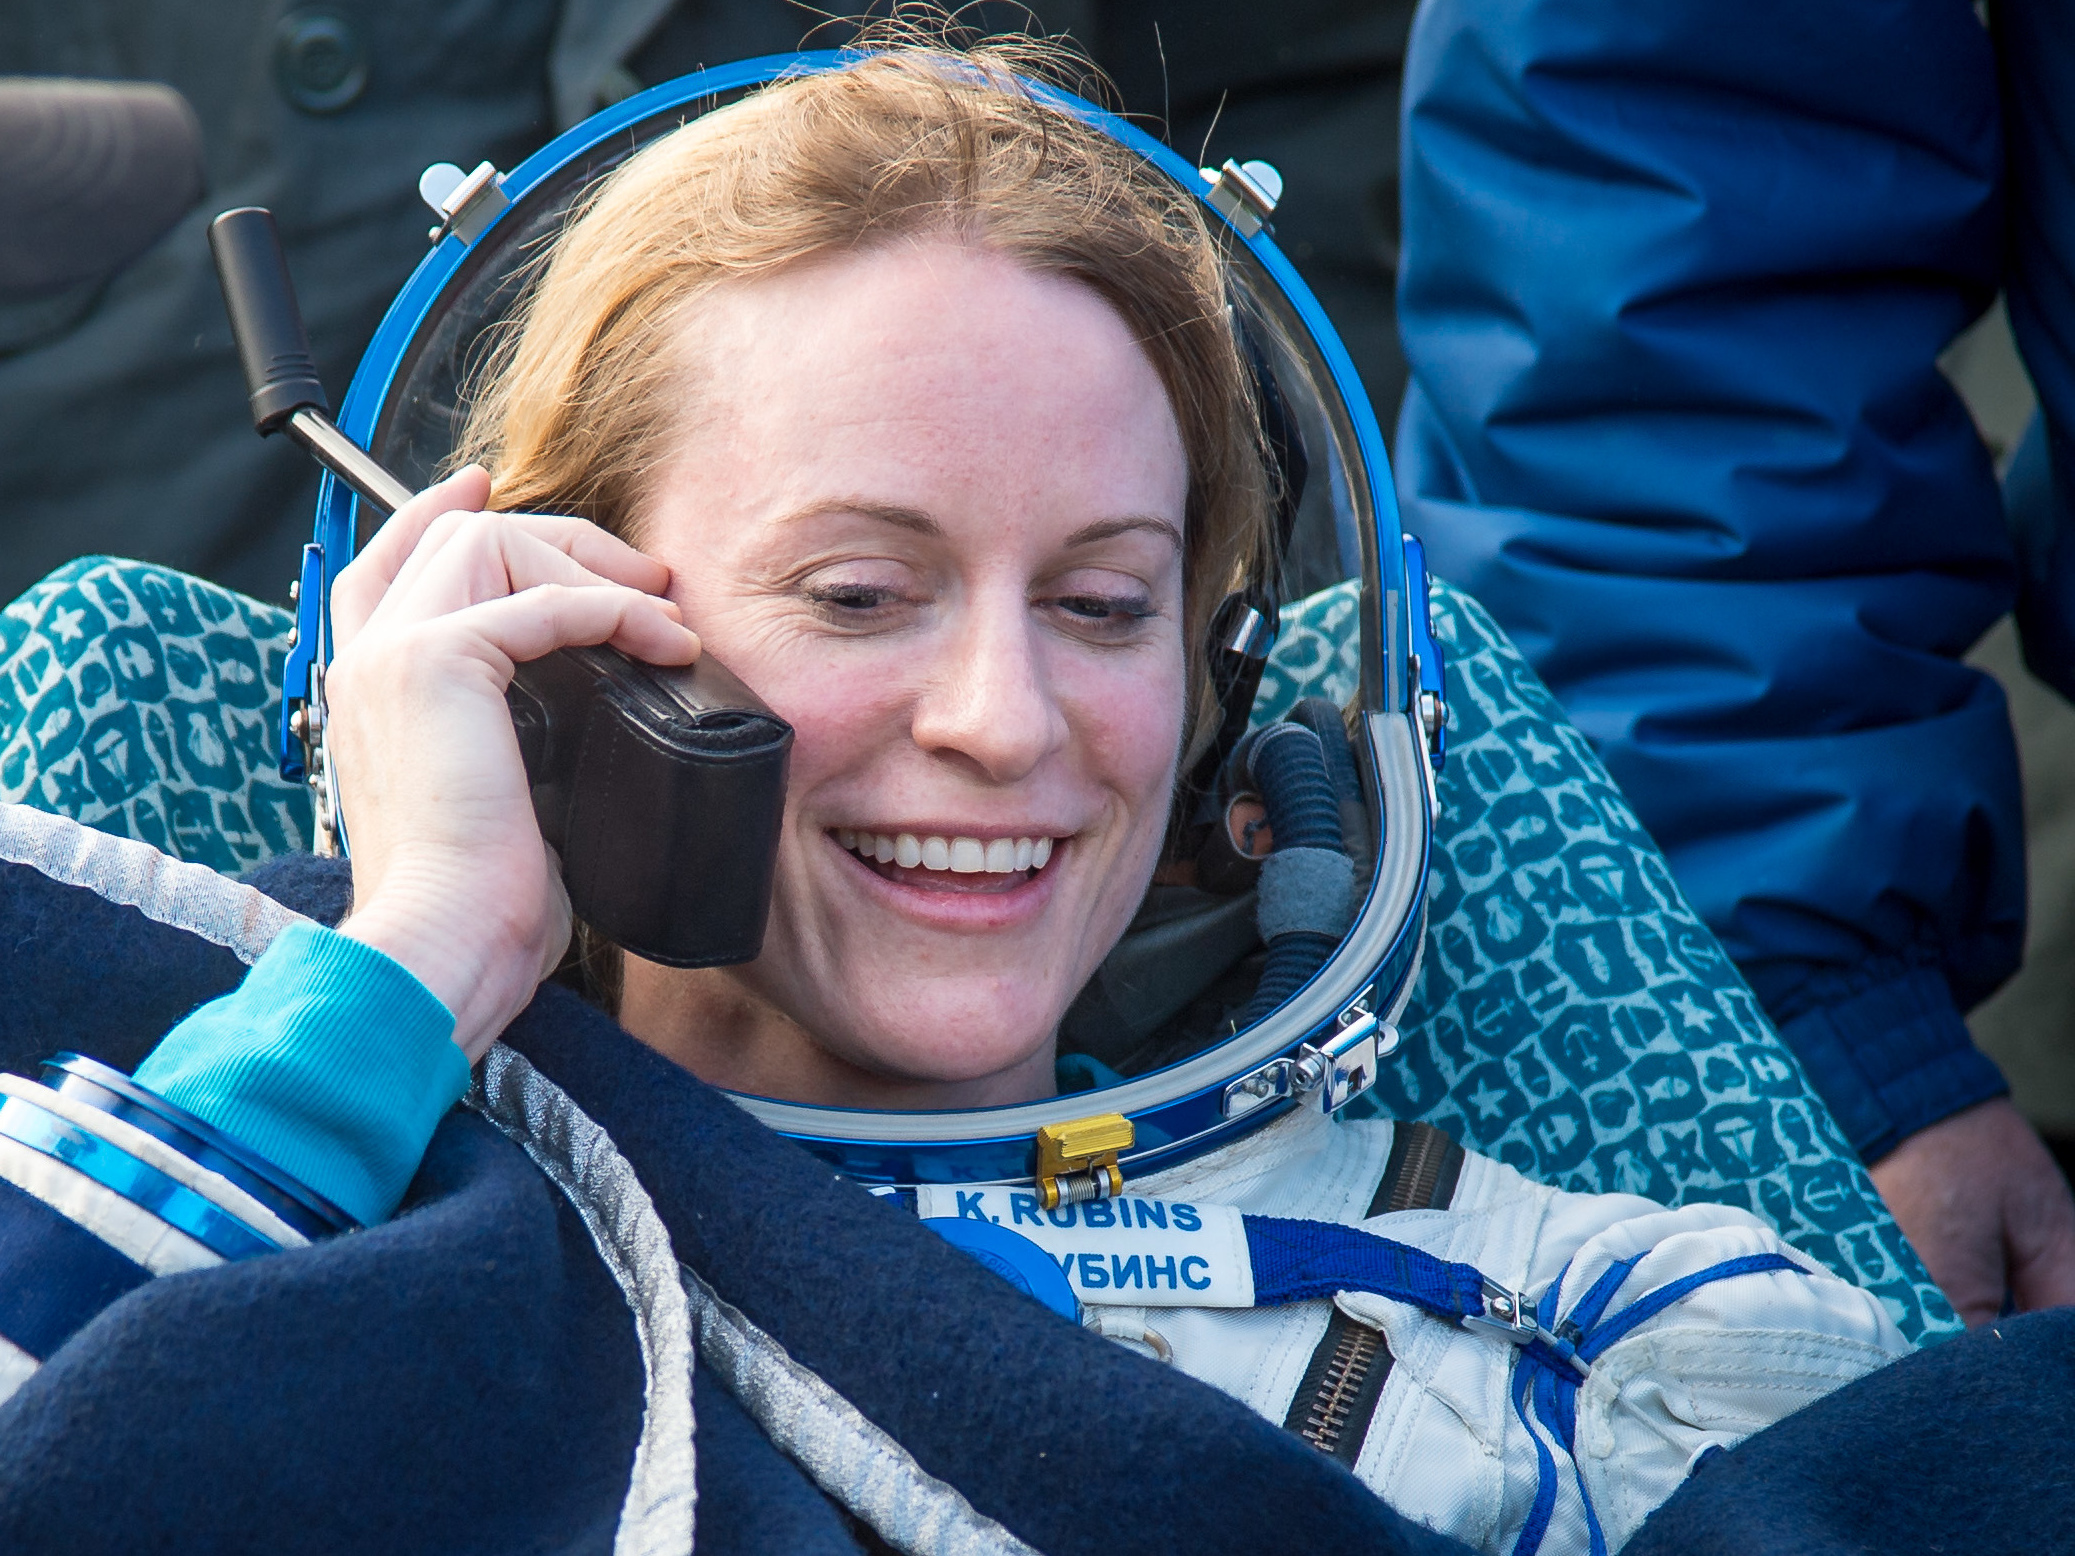 Astronaut Kate Rubins talks to her family via satellite phone shortly after she landed on earth after 115 days in space. Bill Ingalls/NASA.